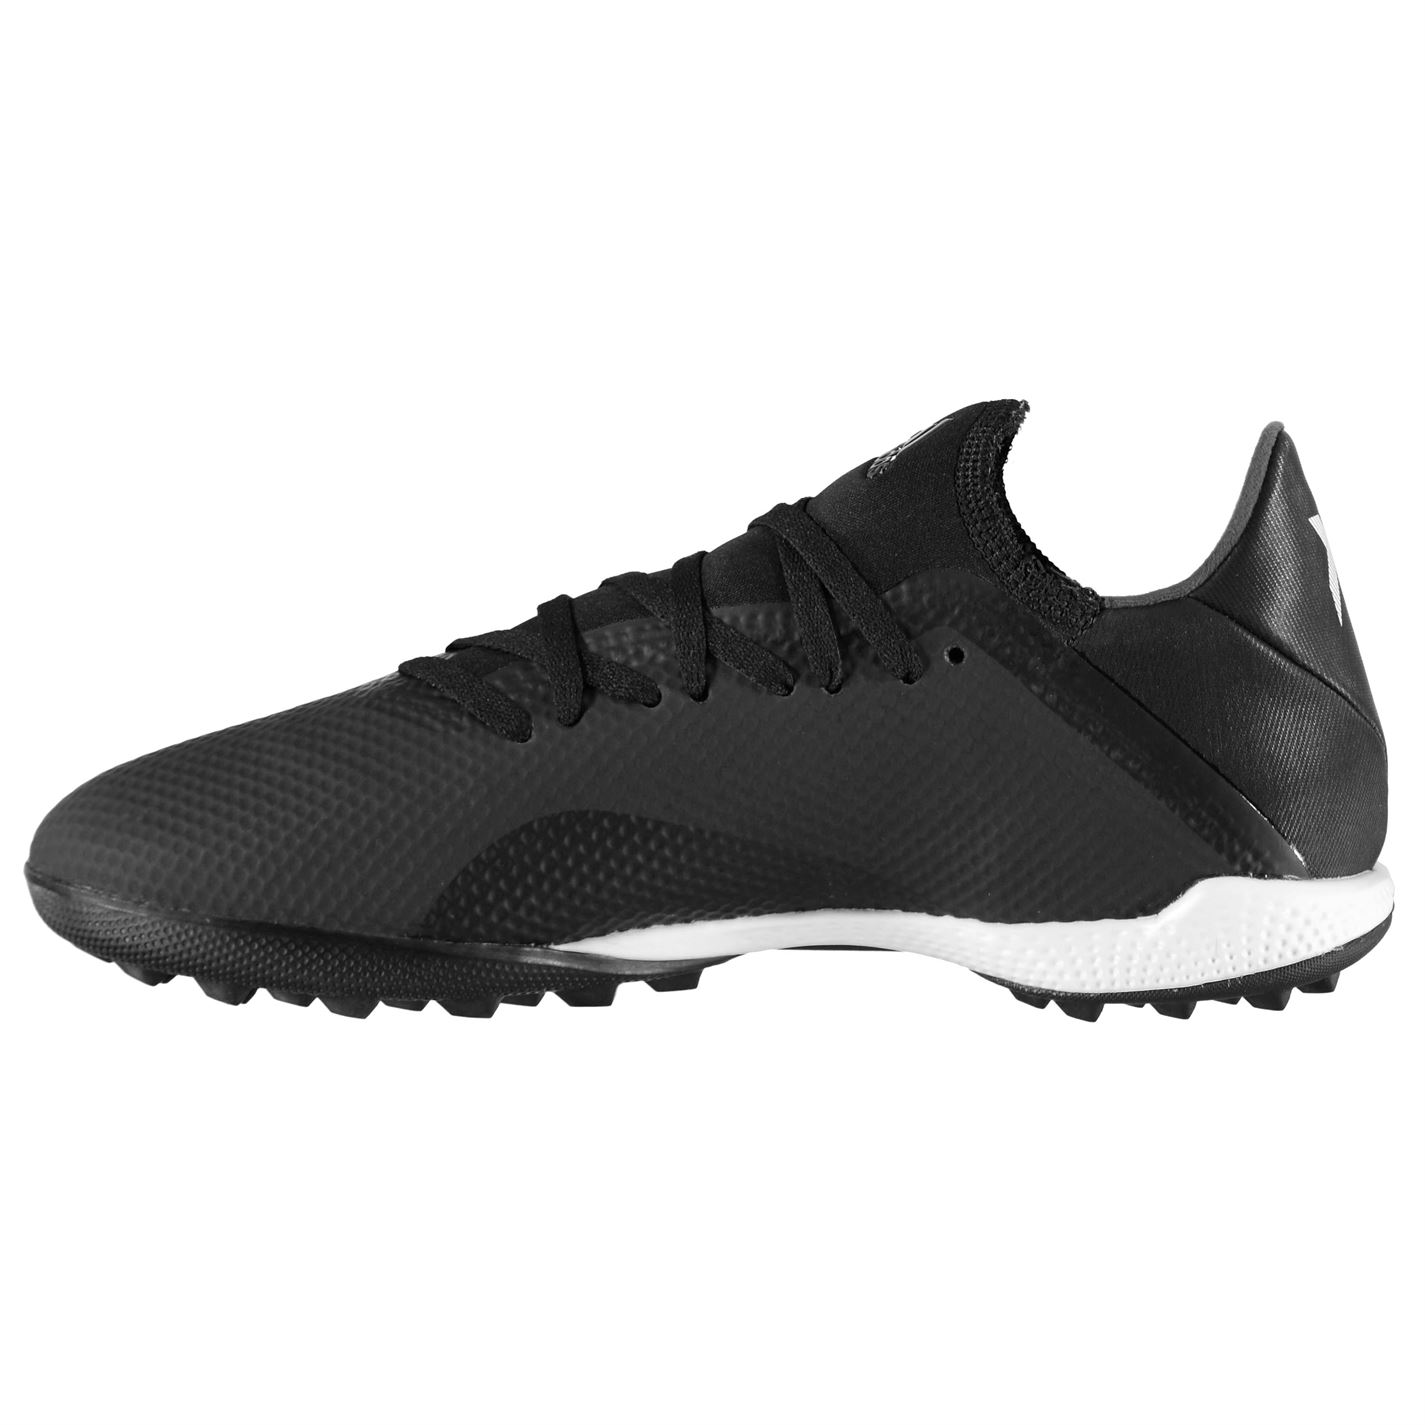 de947c403194 adidas Mens X 18.3 Tango Astro Turf Trainers Football Boots Lace Up ...